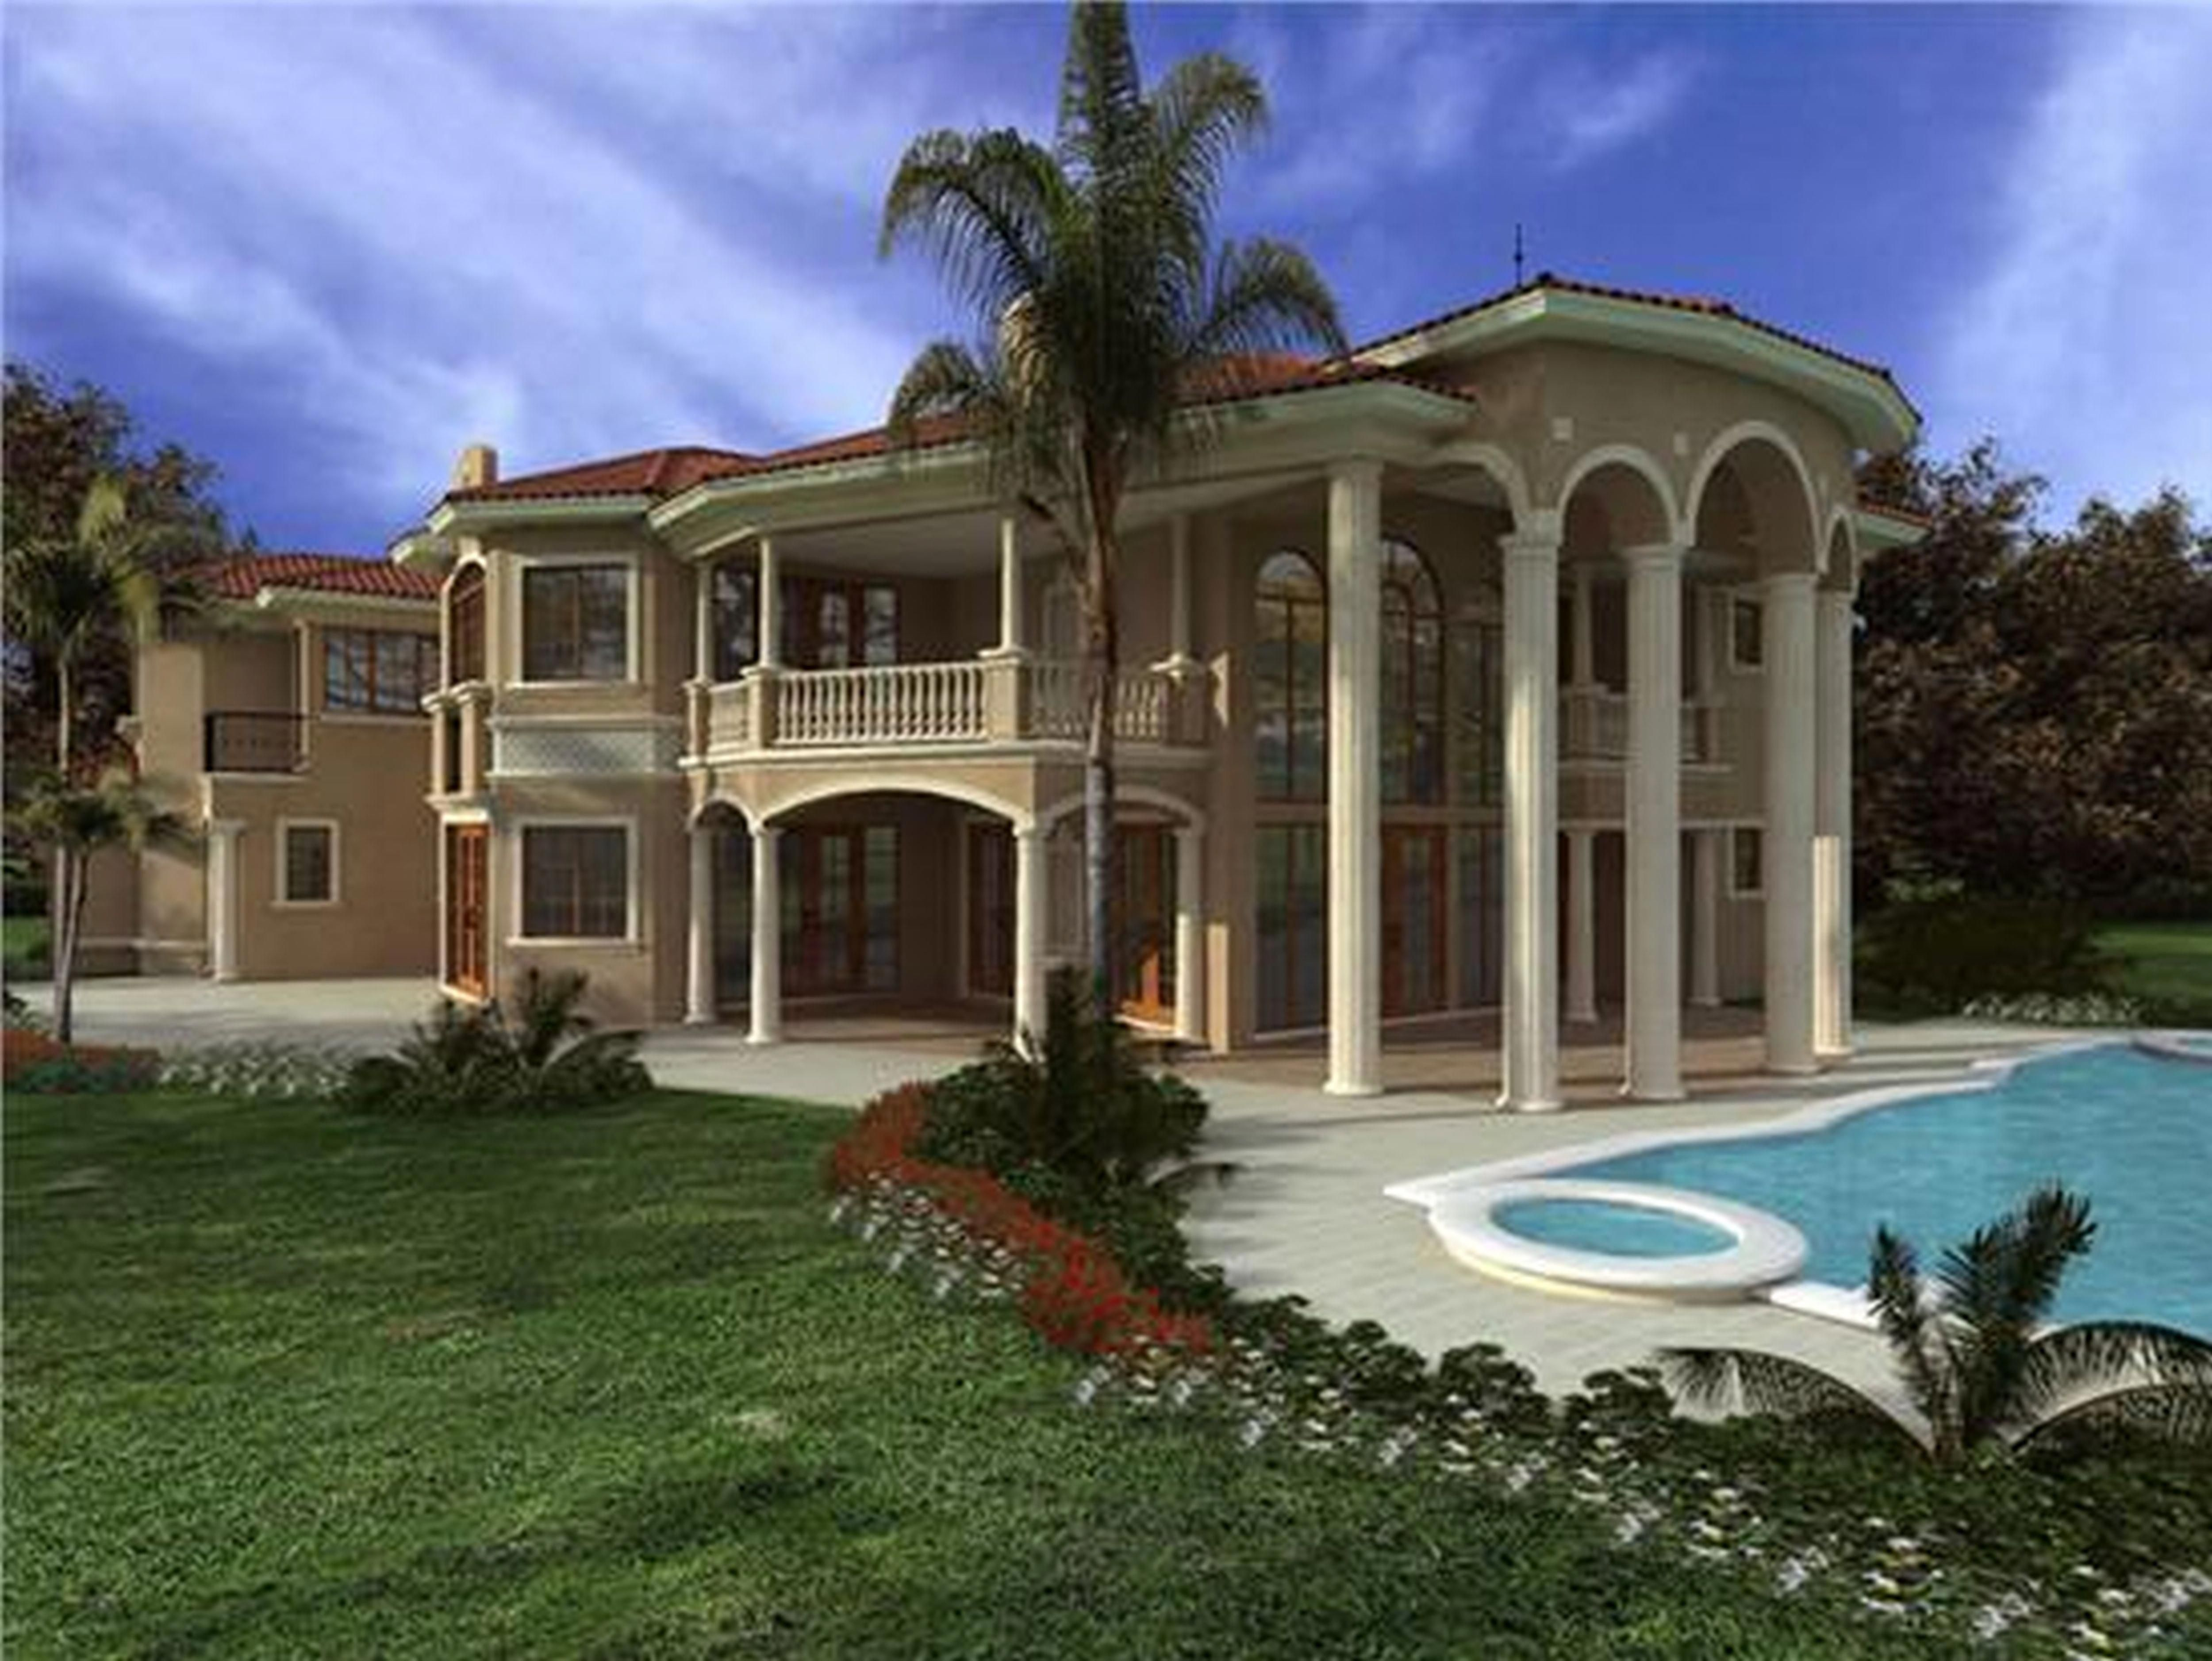 Fame Tropical House Designs And Floor Plans With Modern Style Glamorous Luxury Modern Classic G House Designs Exterior Country House Design Luxury House Plans